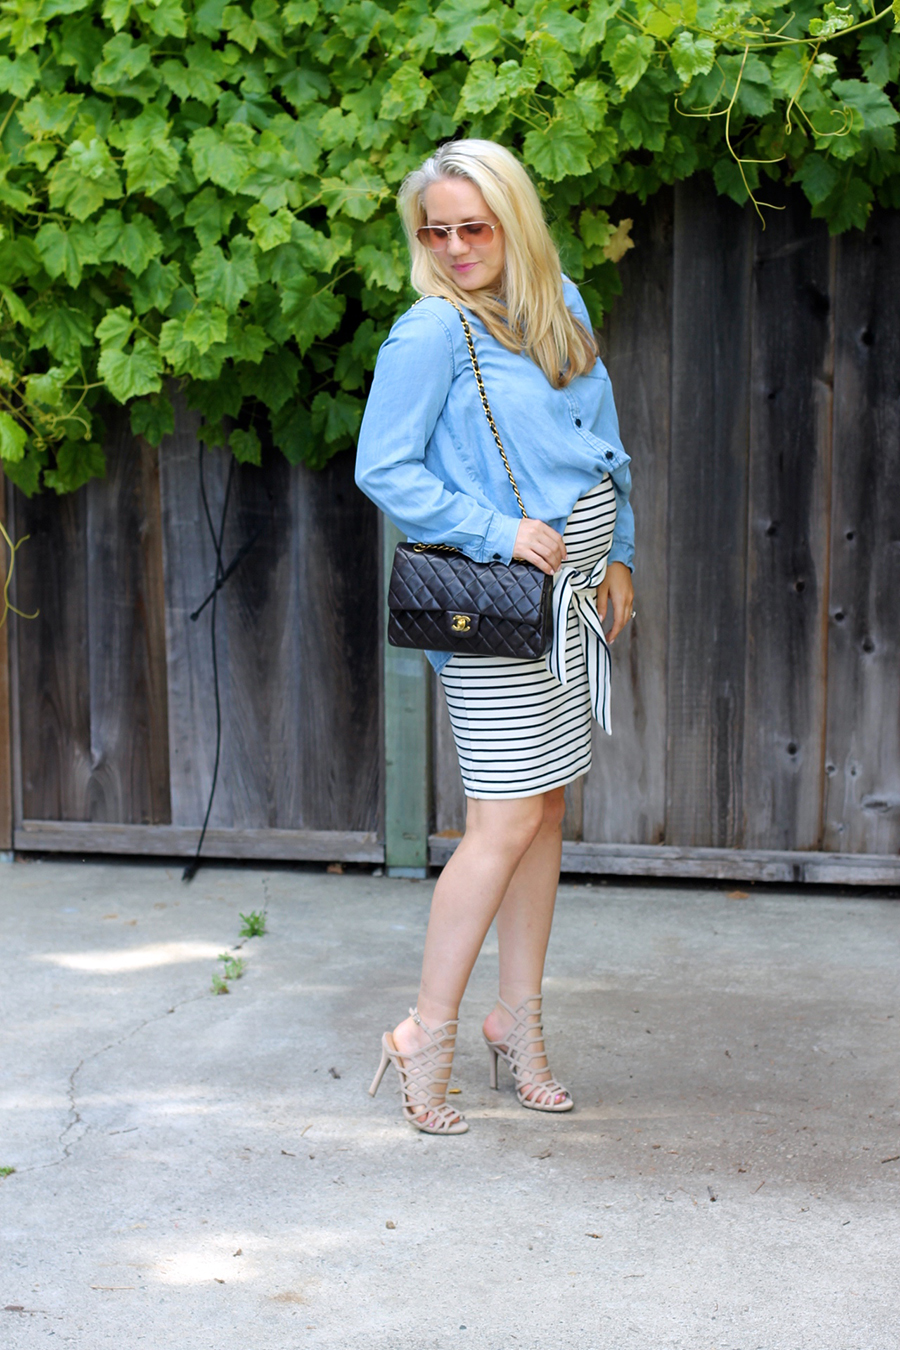 Kingdom & State-Tie Front Skirt-Maternity Style-Pregnancy Style-Chambray Top-Target Style-Have Need Want 8